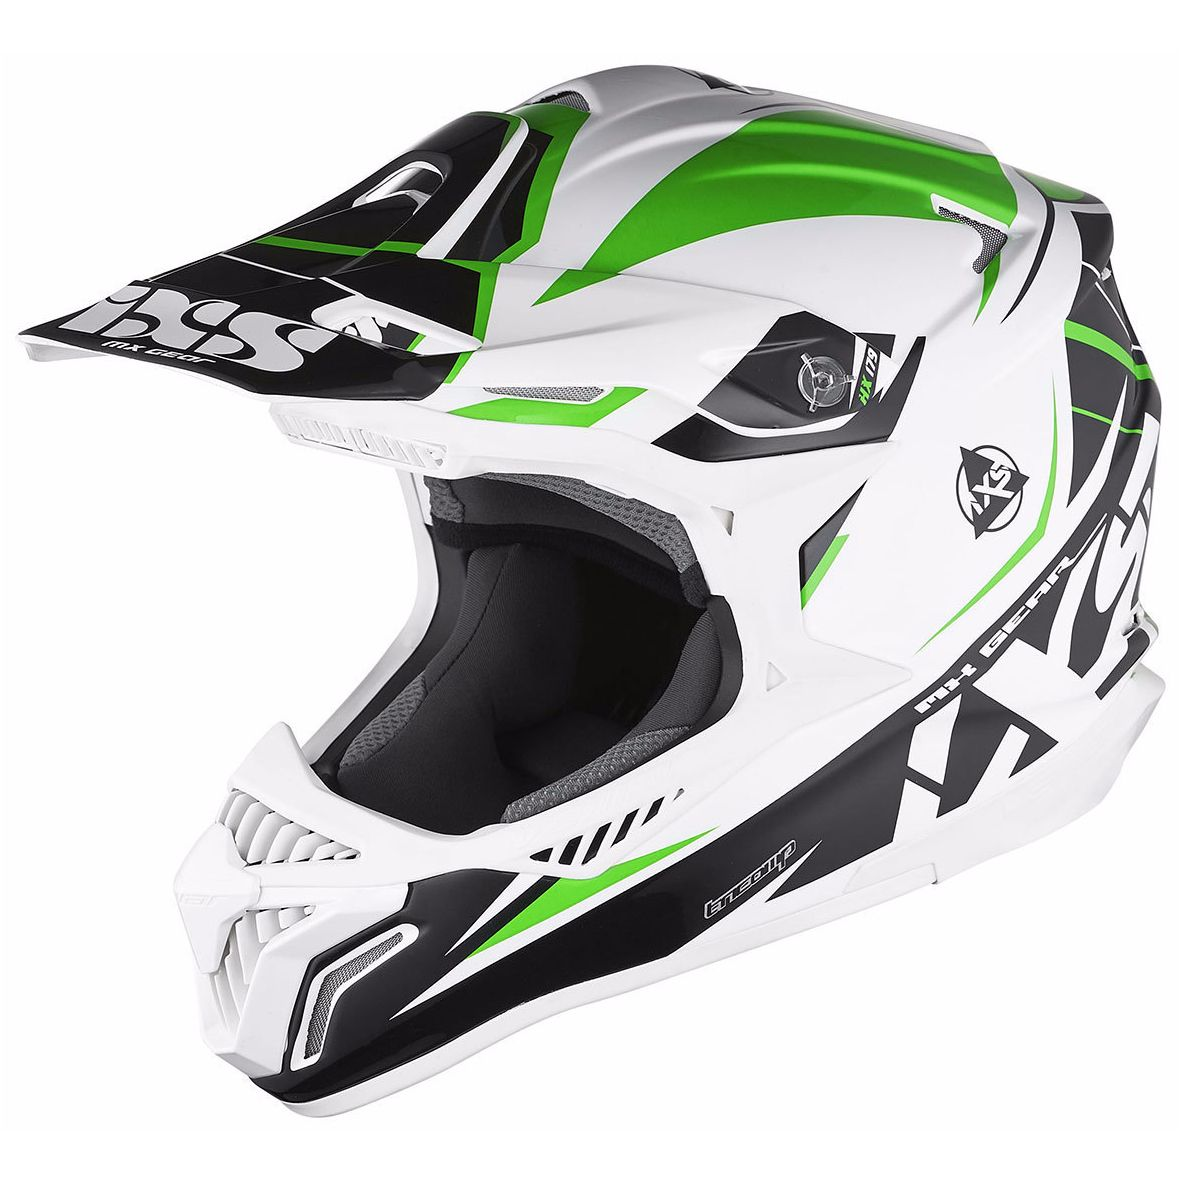 Casque Cross Ixs Hx179 Flash - Blanc Noir Vert